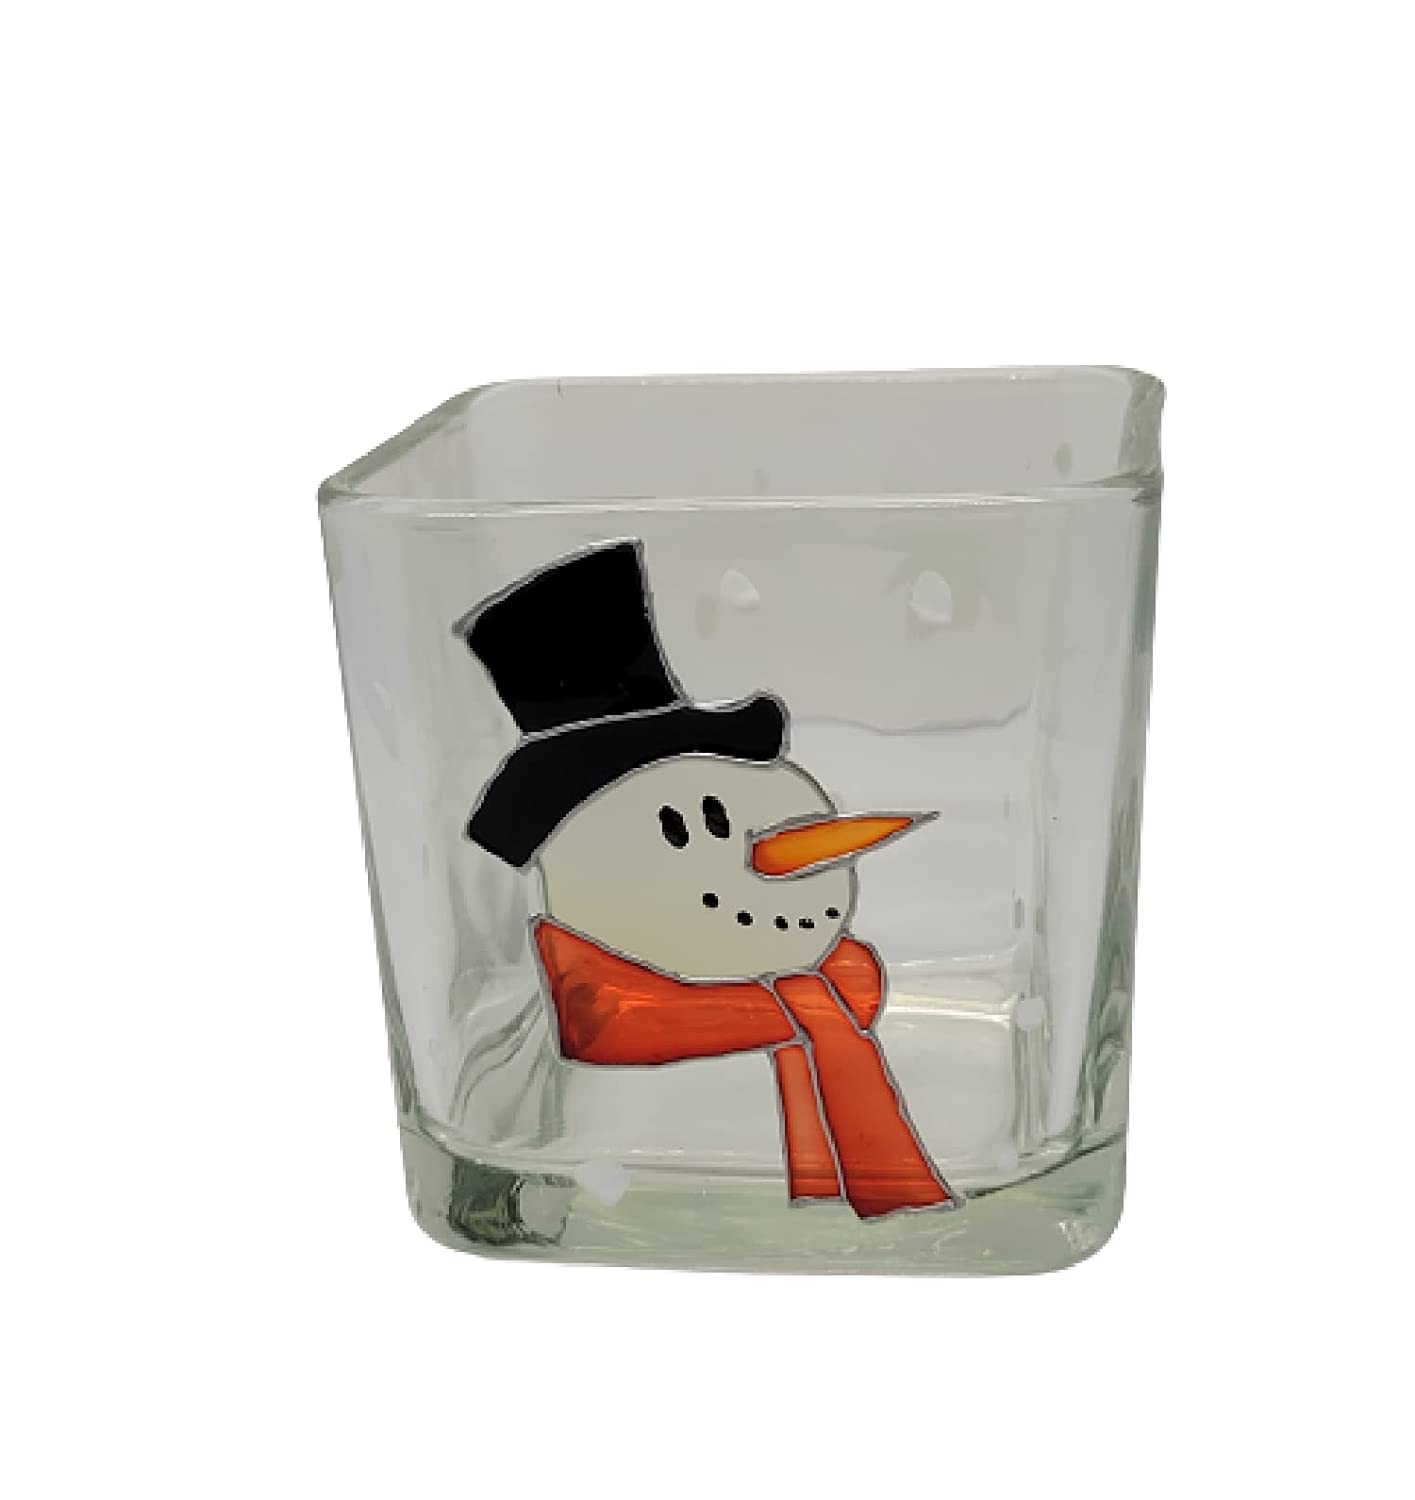 Snowman Hand Painted Stained 40% OFF Cheap Sale Glass Christma Square Candle Holder Max 79% OFF